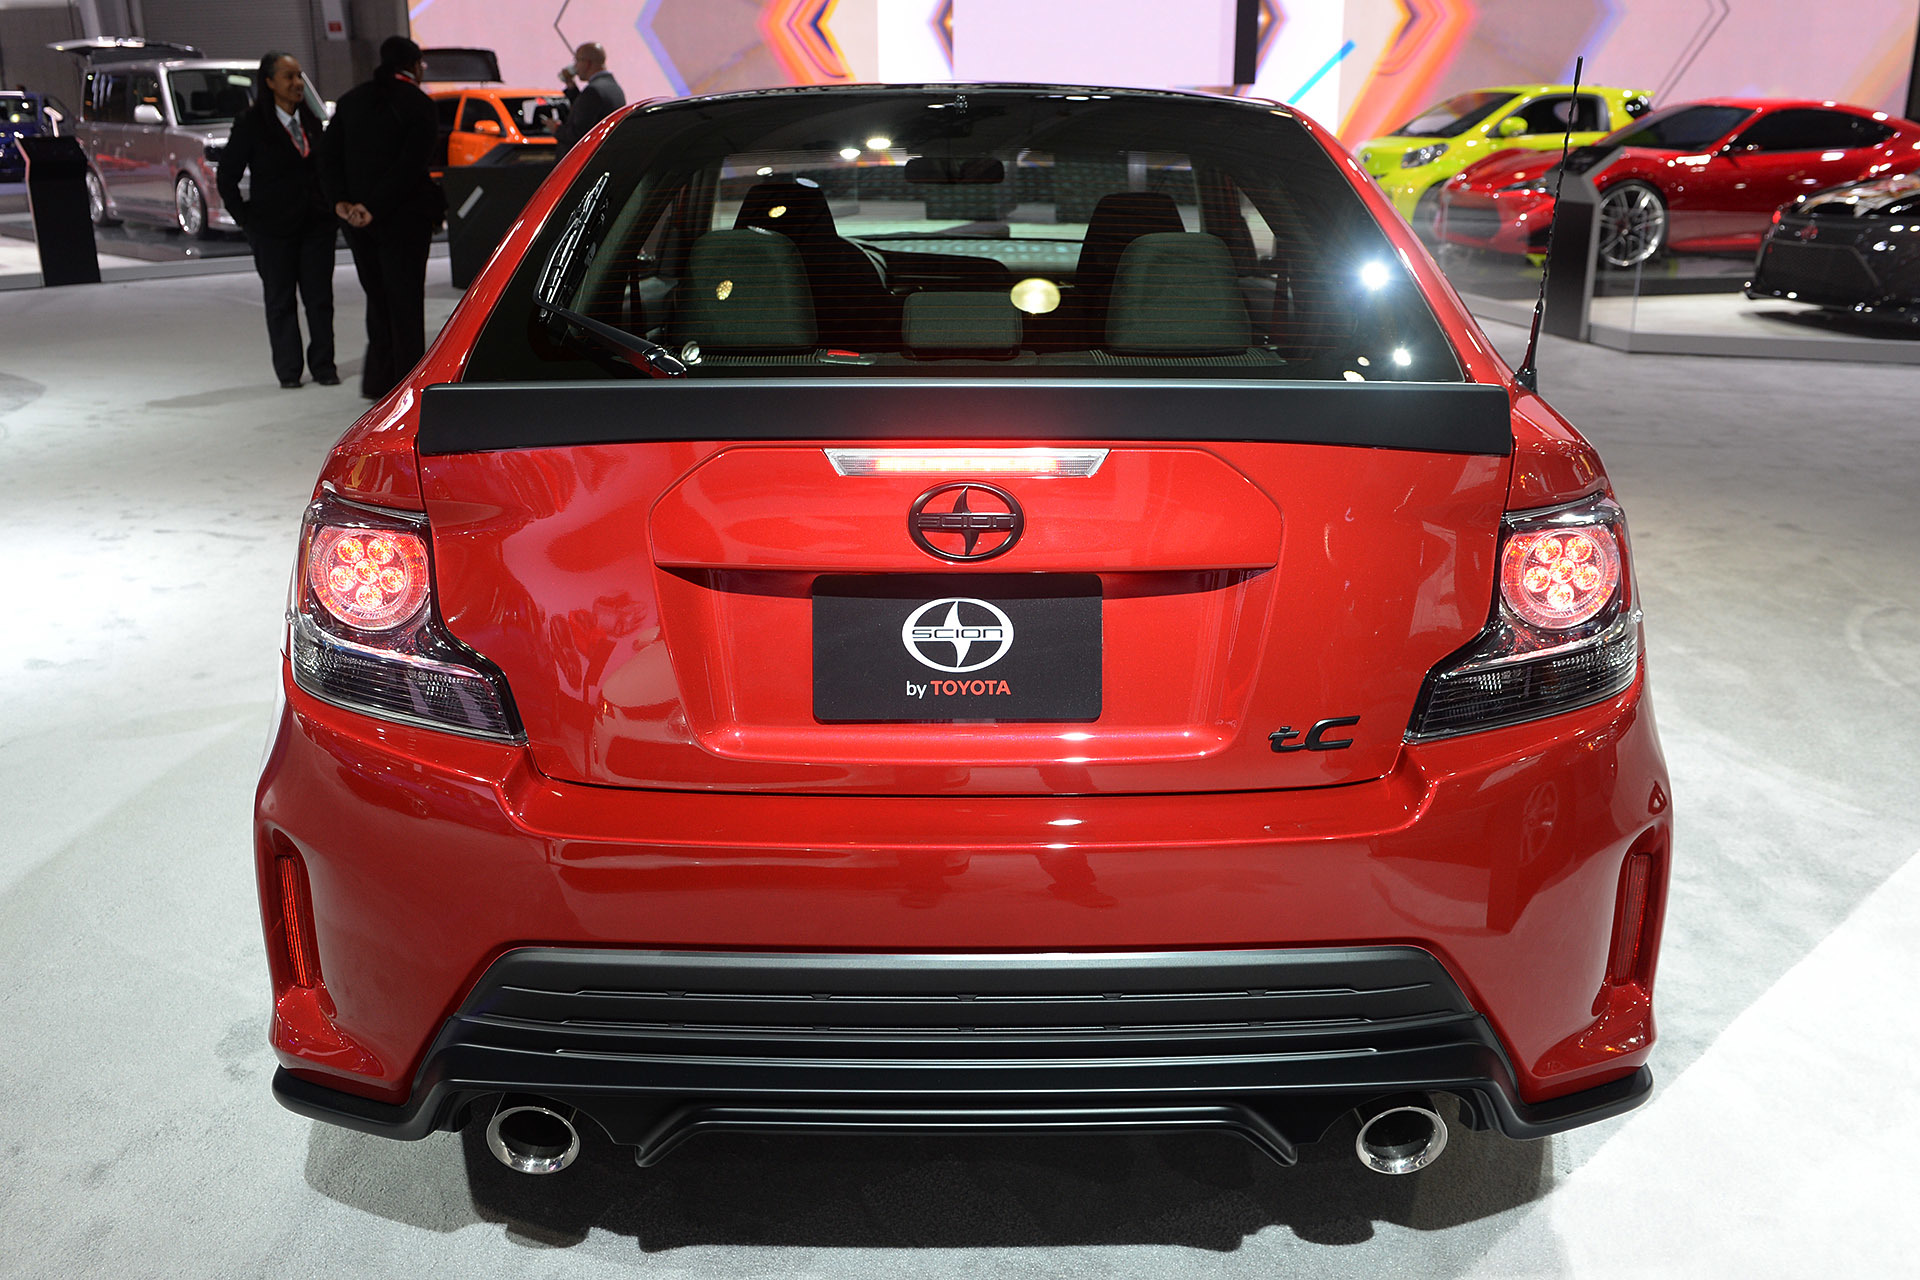 2017 Scion Tc Release Series 10 0 New York 2016 Photo Gallery Autoblog